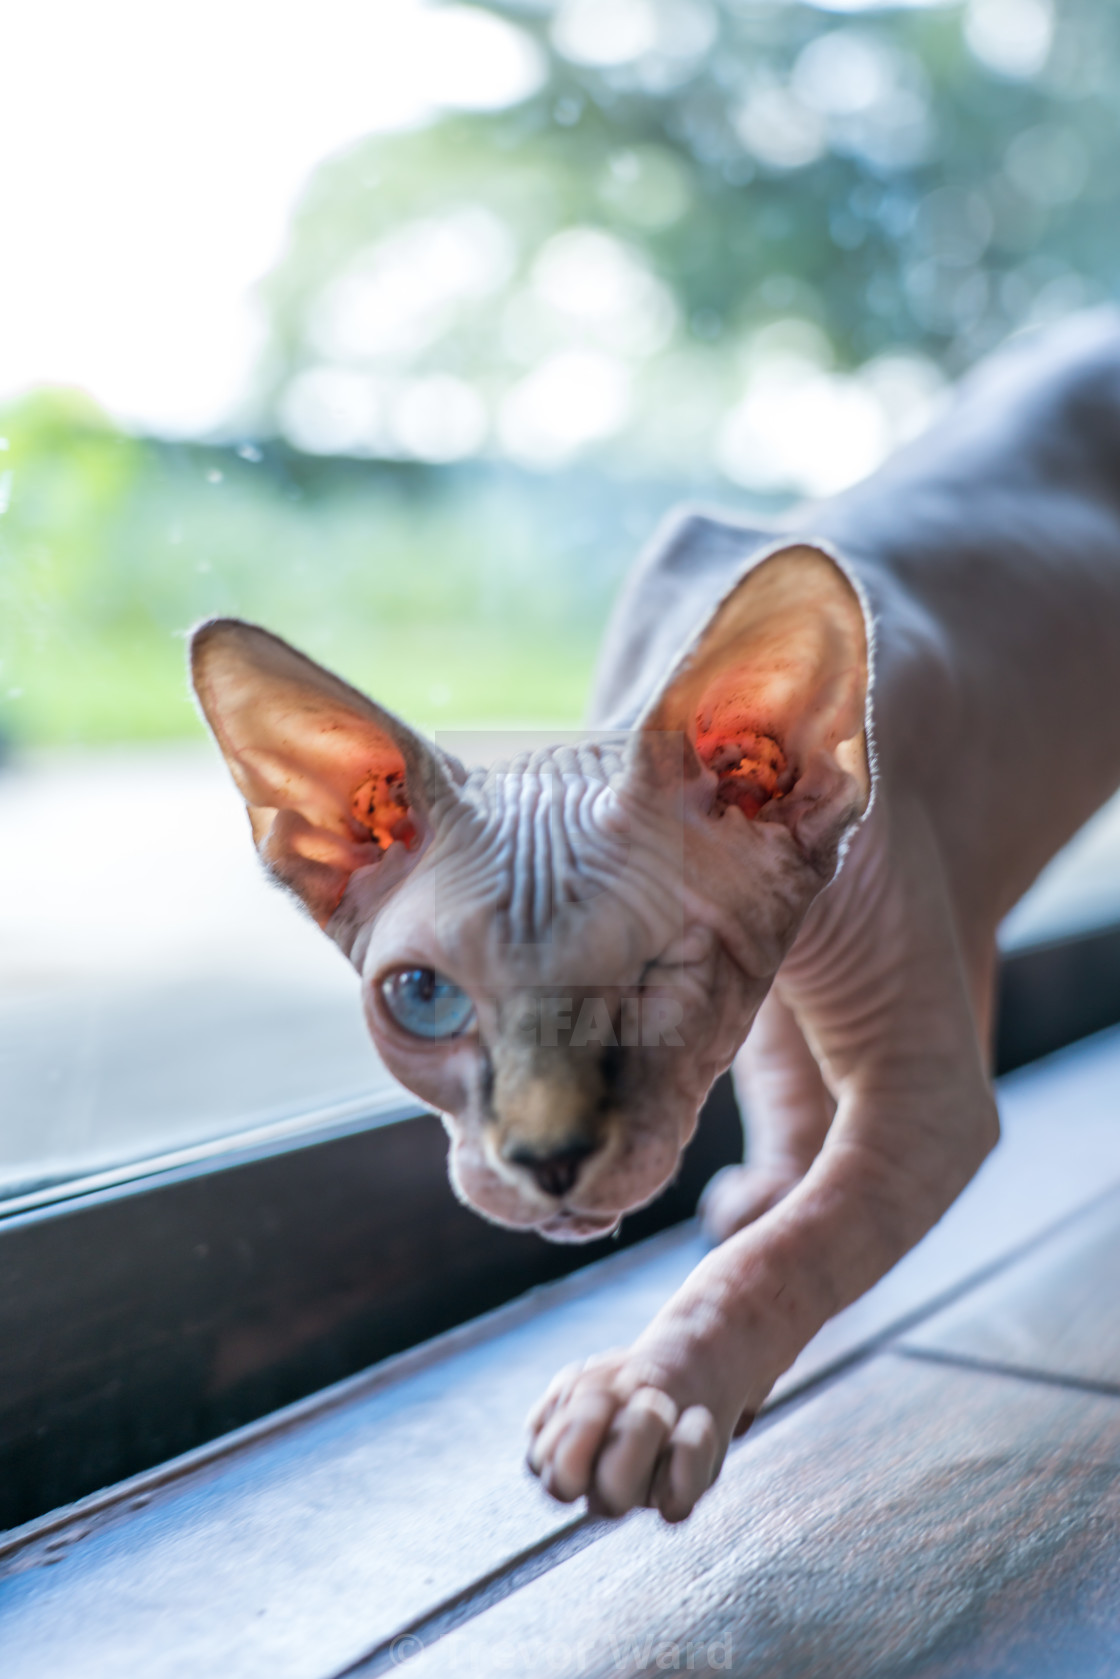 Hairless Cat License Download Or Print For 3 72 Photos Picfair